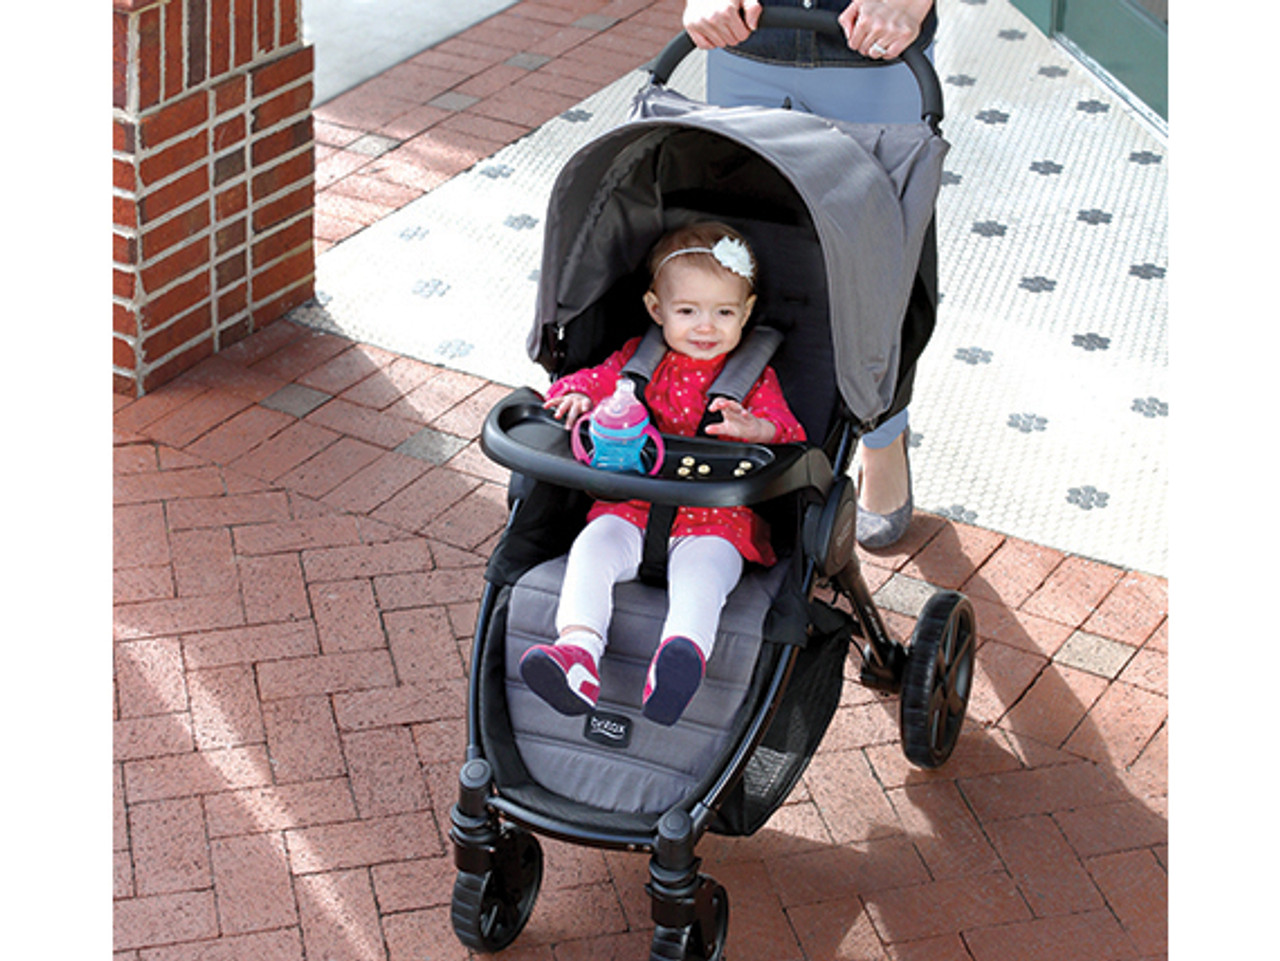 The Britax Agile Child Tray easily attaches to the stroller frame and features a designated child drink holder and a flat surface for snacks or other items.